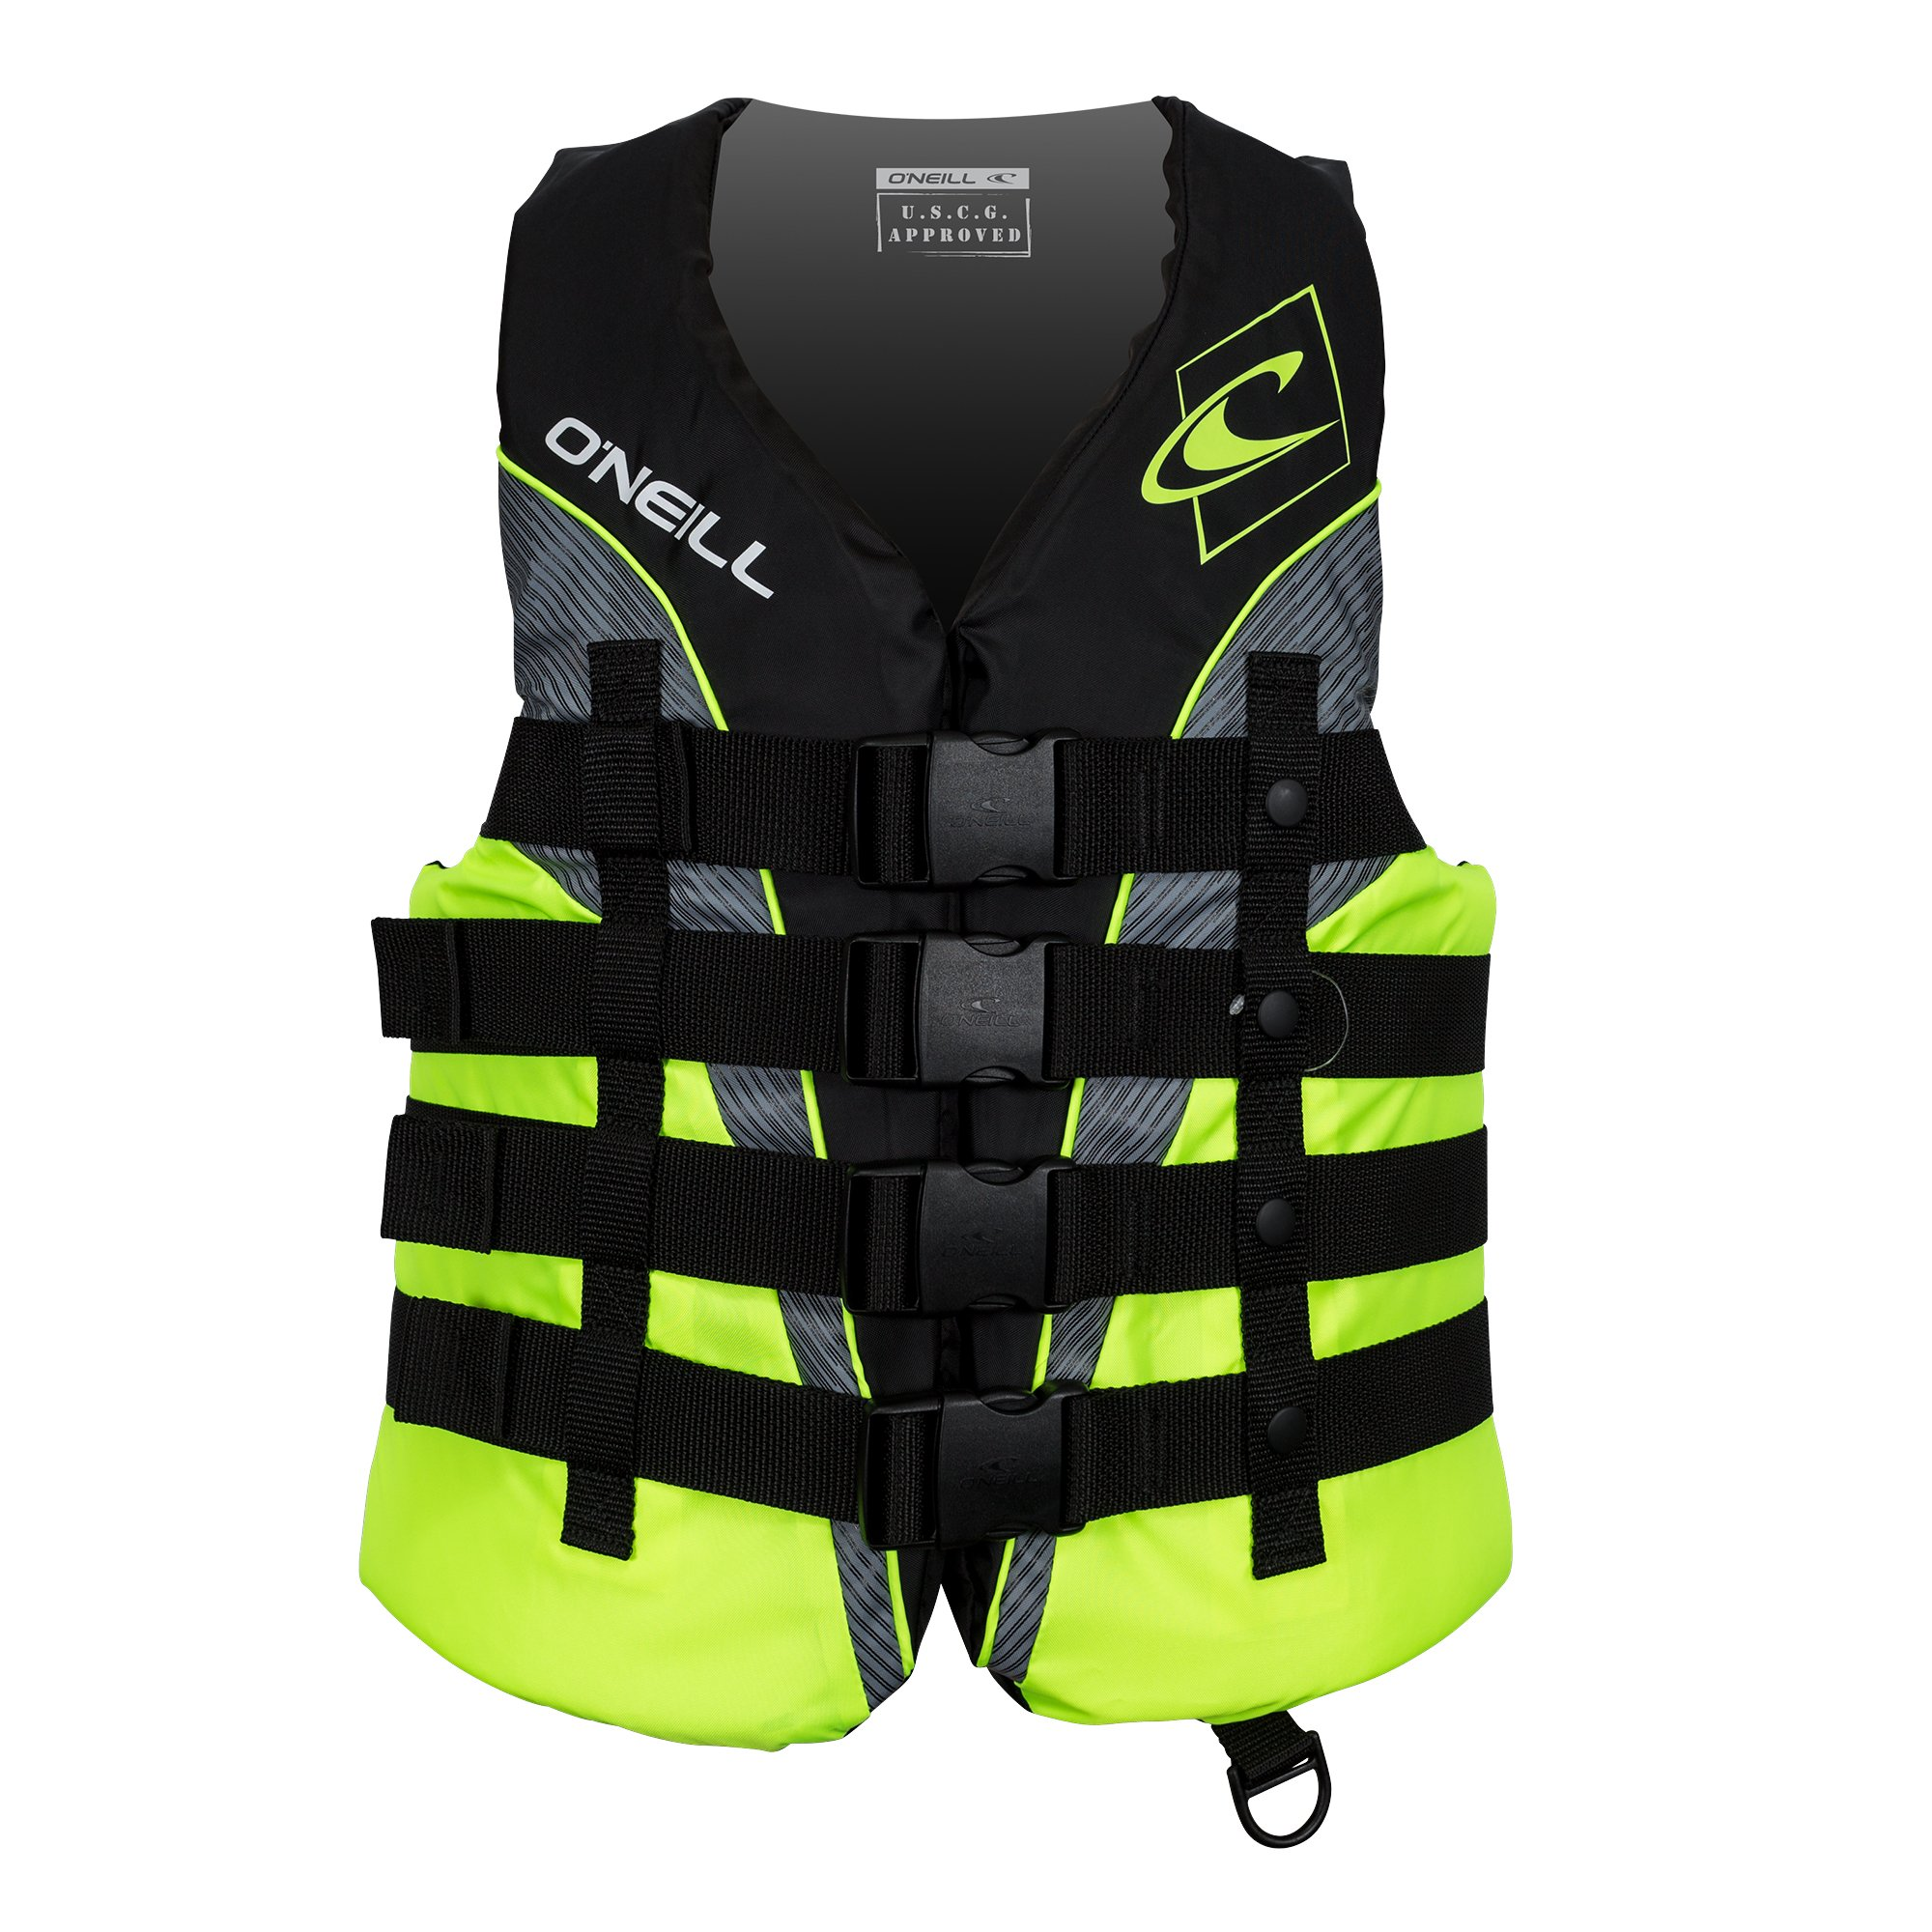 O'Neill  Men's Superlite USCG Life Vest,Black/Lime/Smoke/Lime,Large by O'Neill Wetsuits